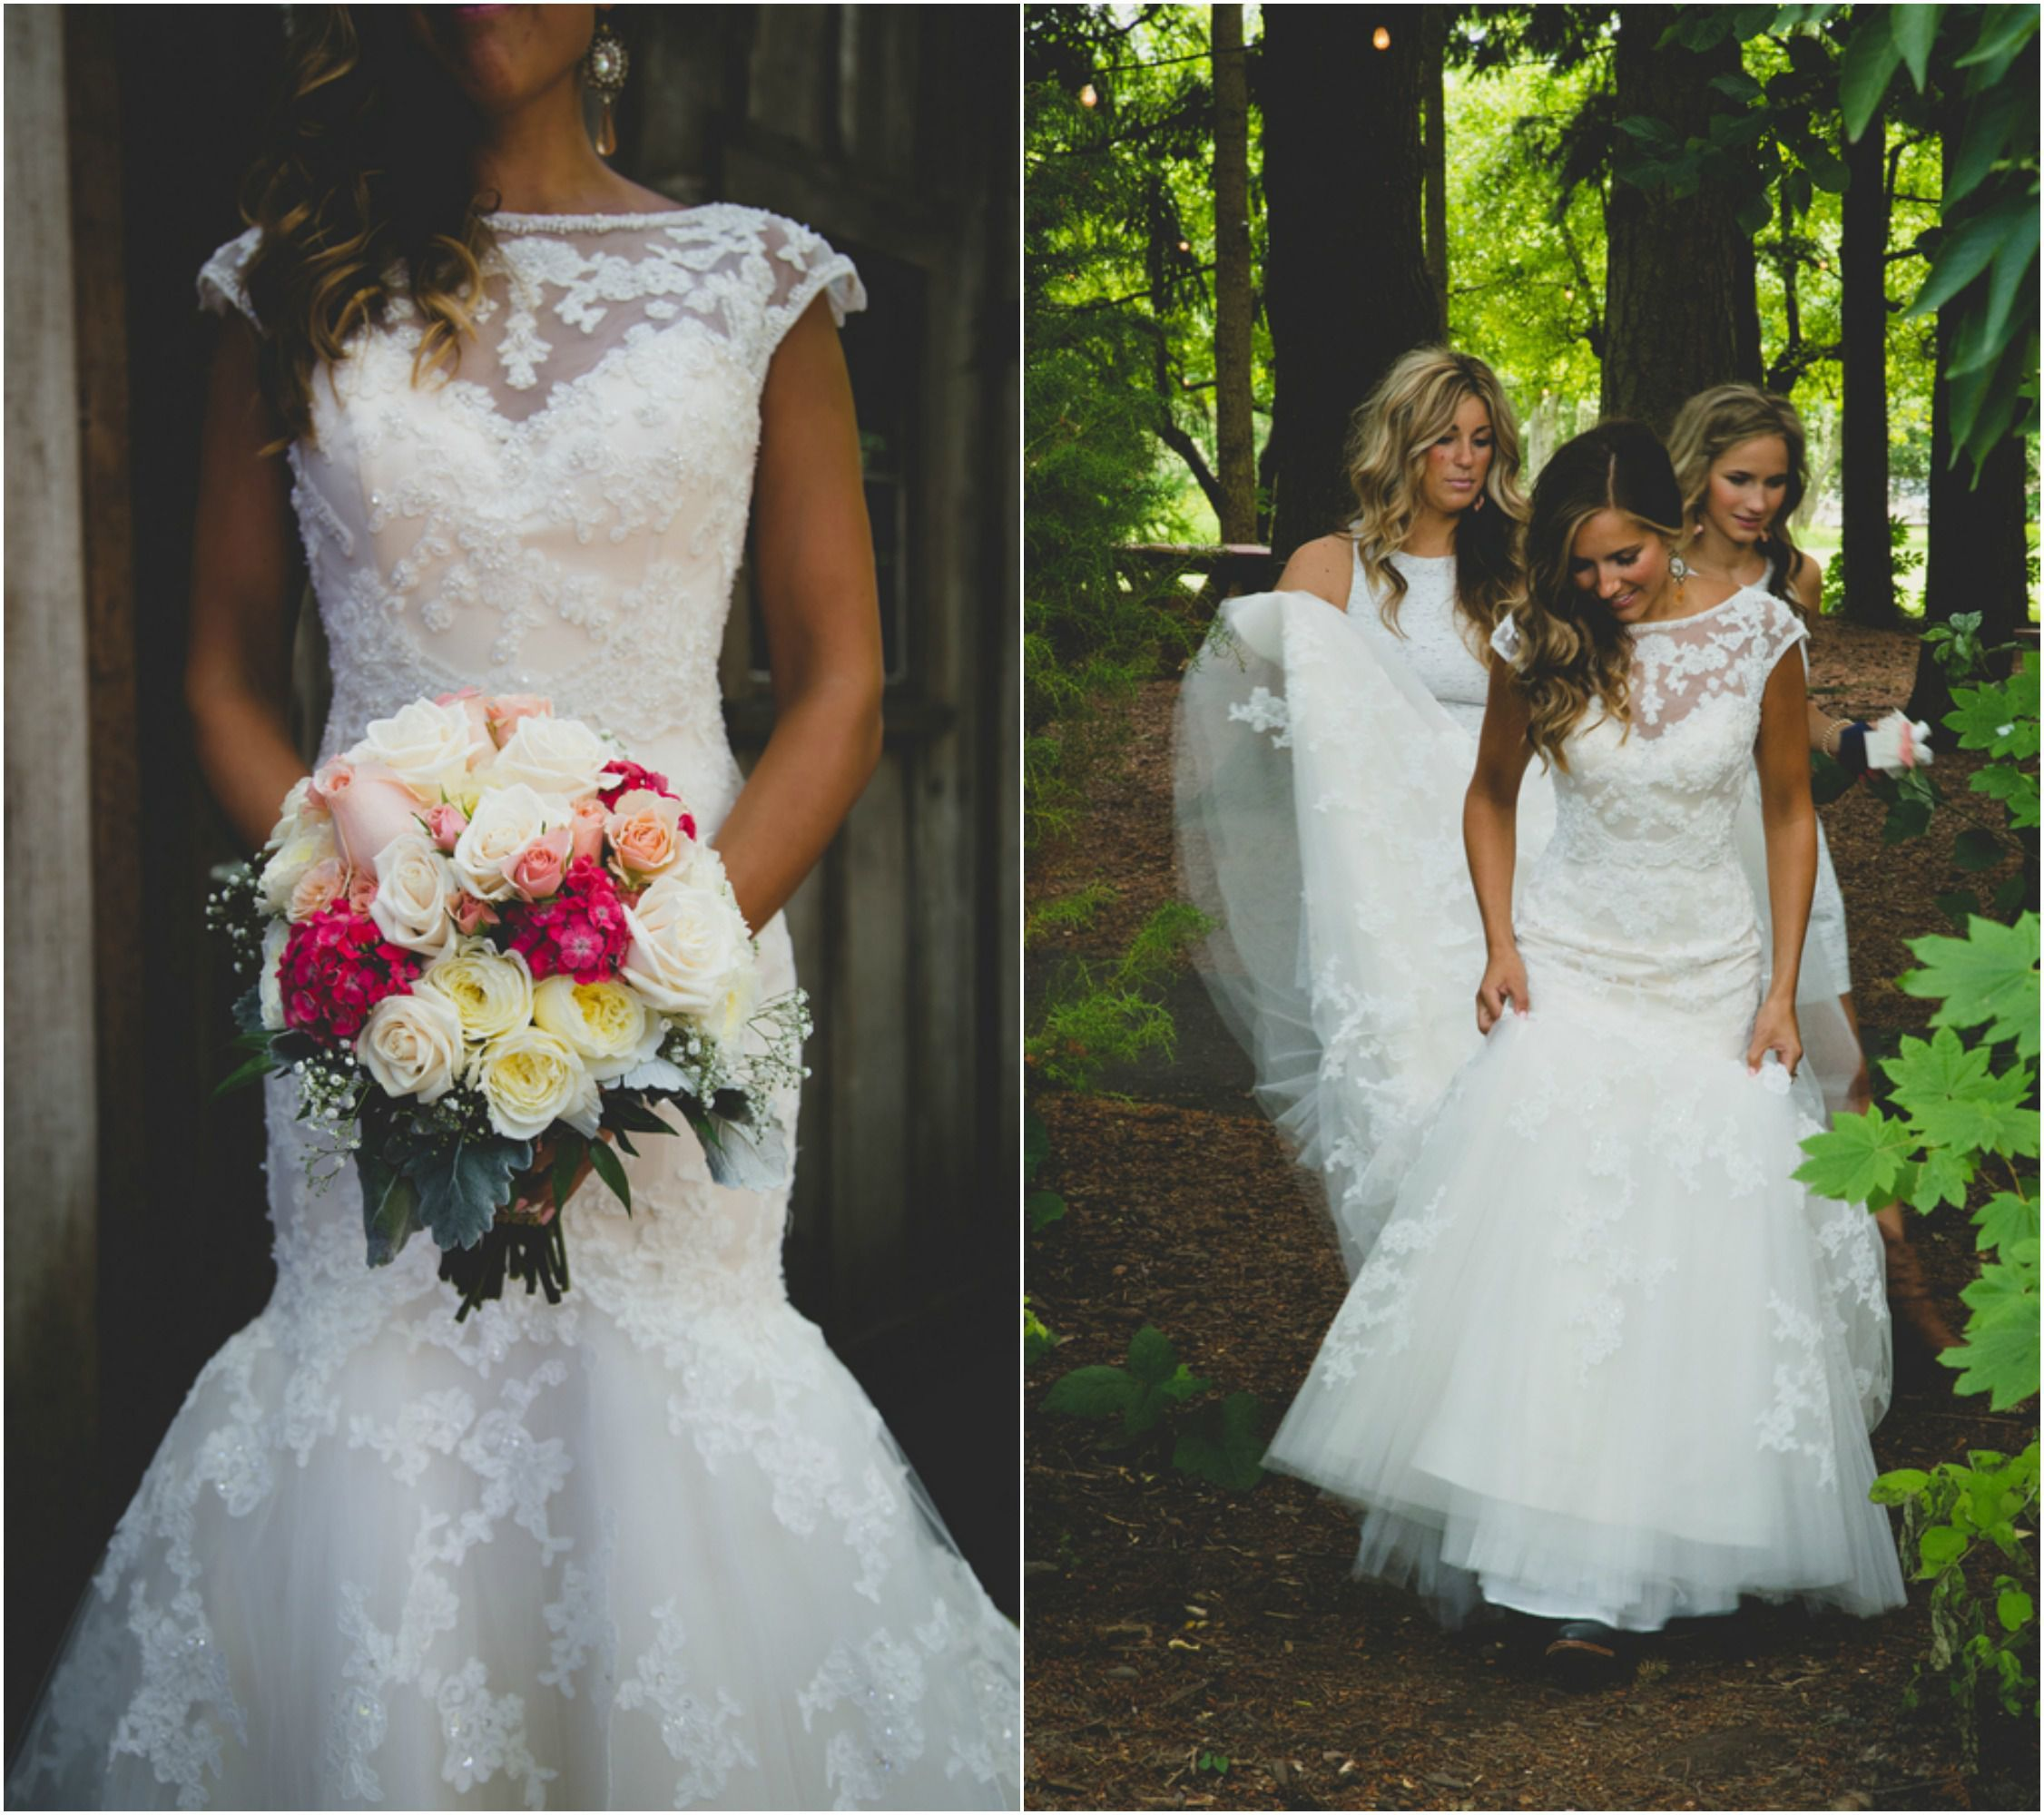 Wedding dresses with cowgirl boots  Wedding With Bridesmaids In Cowboy Boots  Rustic wedding details